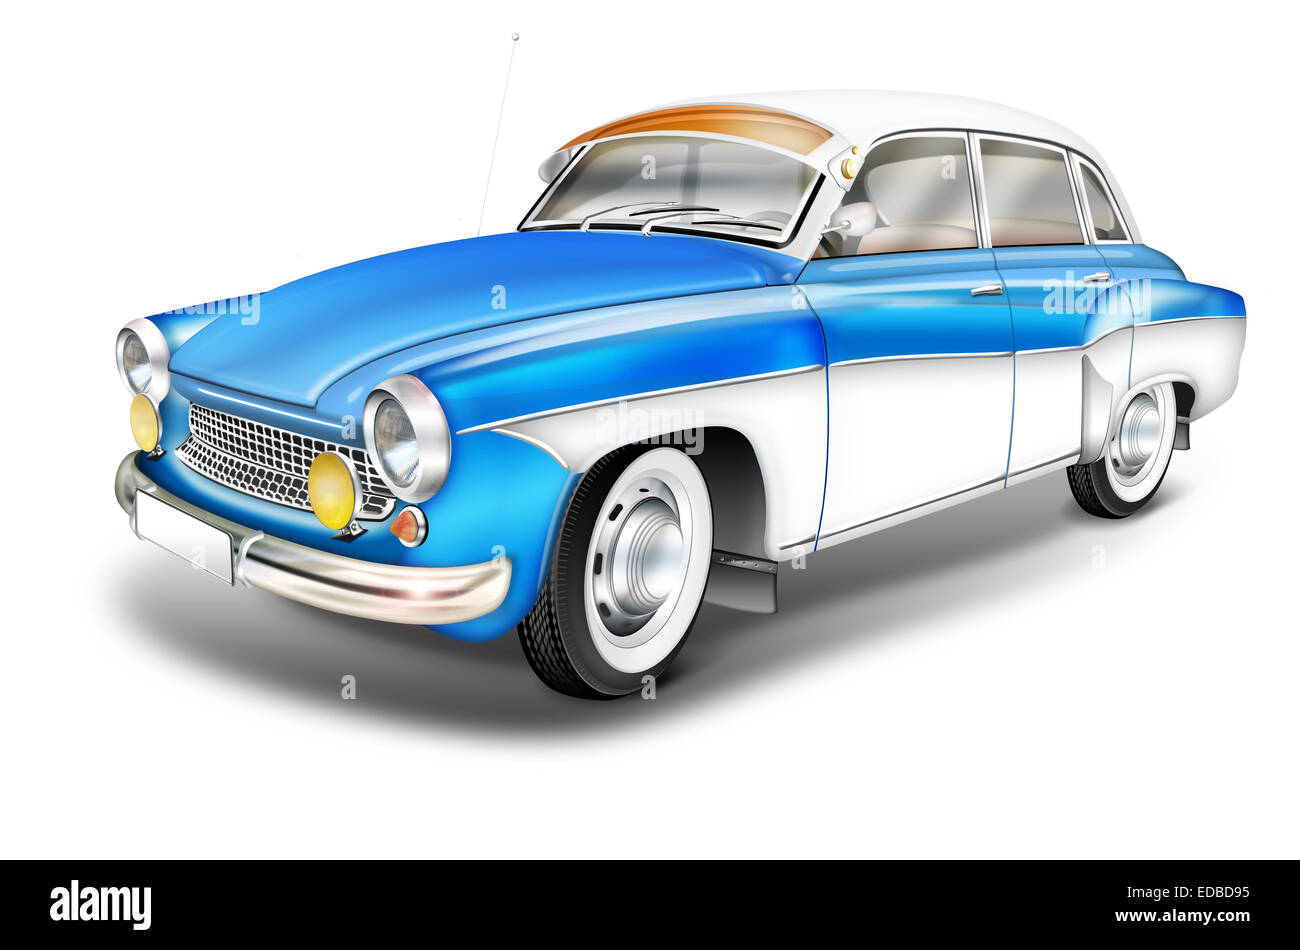 DDR vintage car from the 60s, Wartburg 311 blue and white, illustration - Stock Image